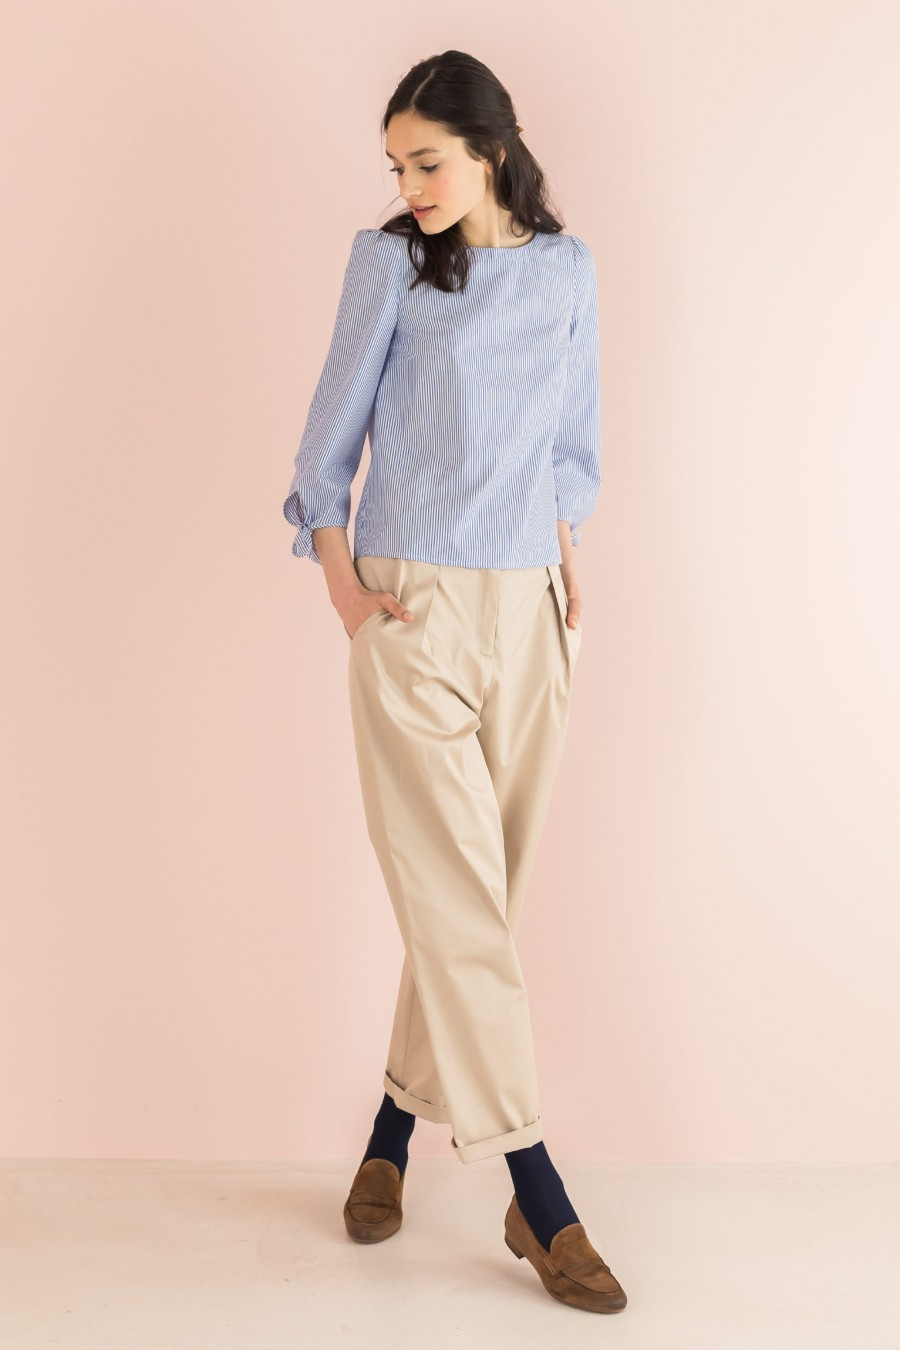 beige trousers in light fabric